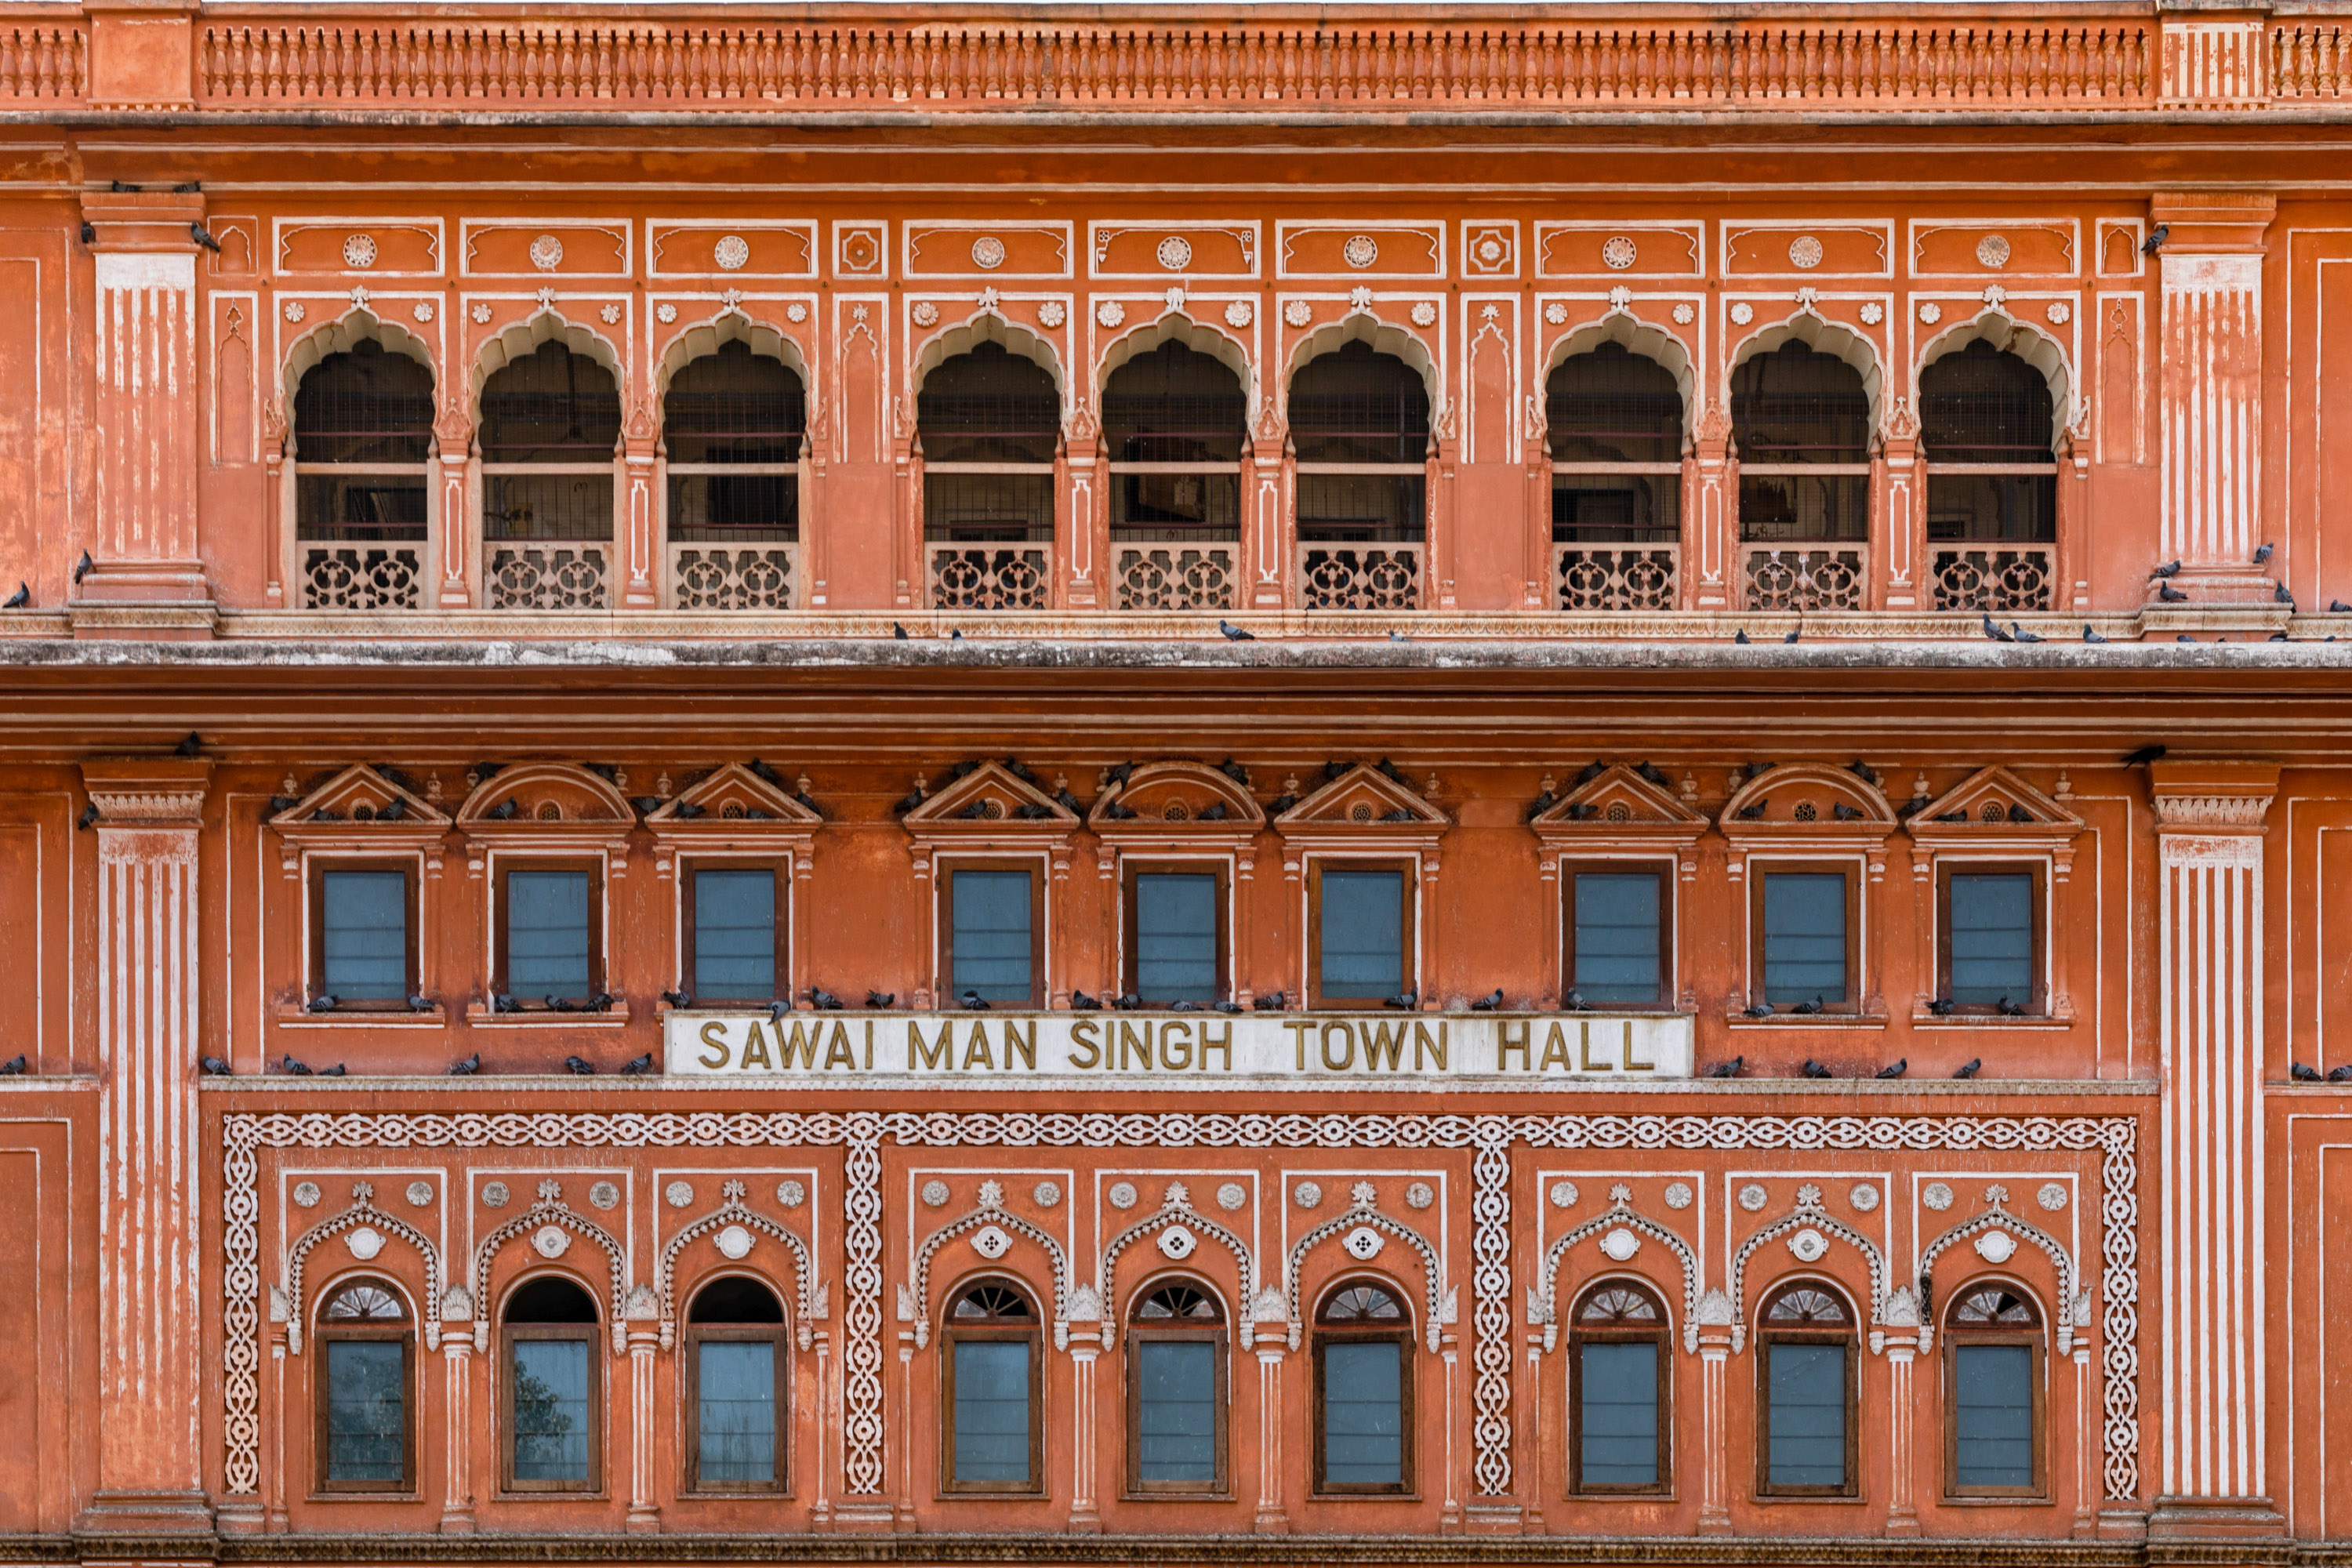 sawai-man-singh-town-hall-photomentor